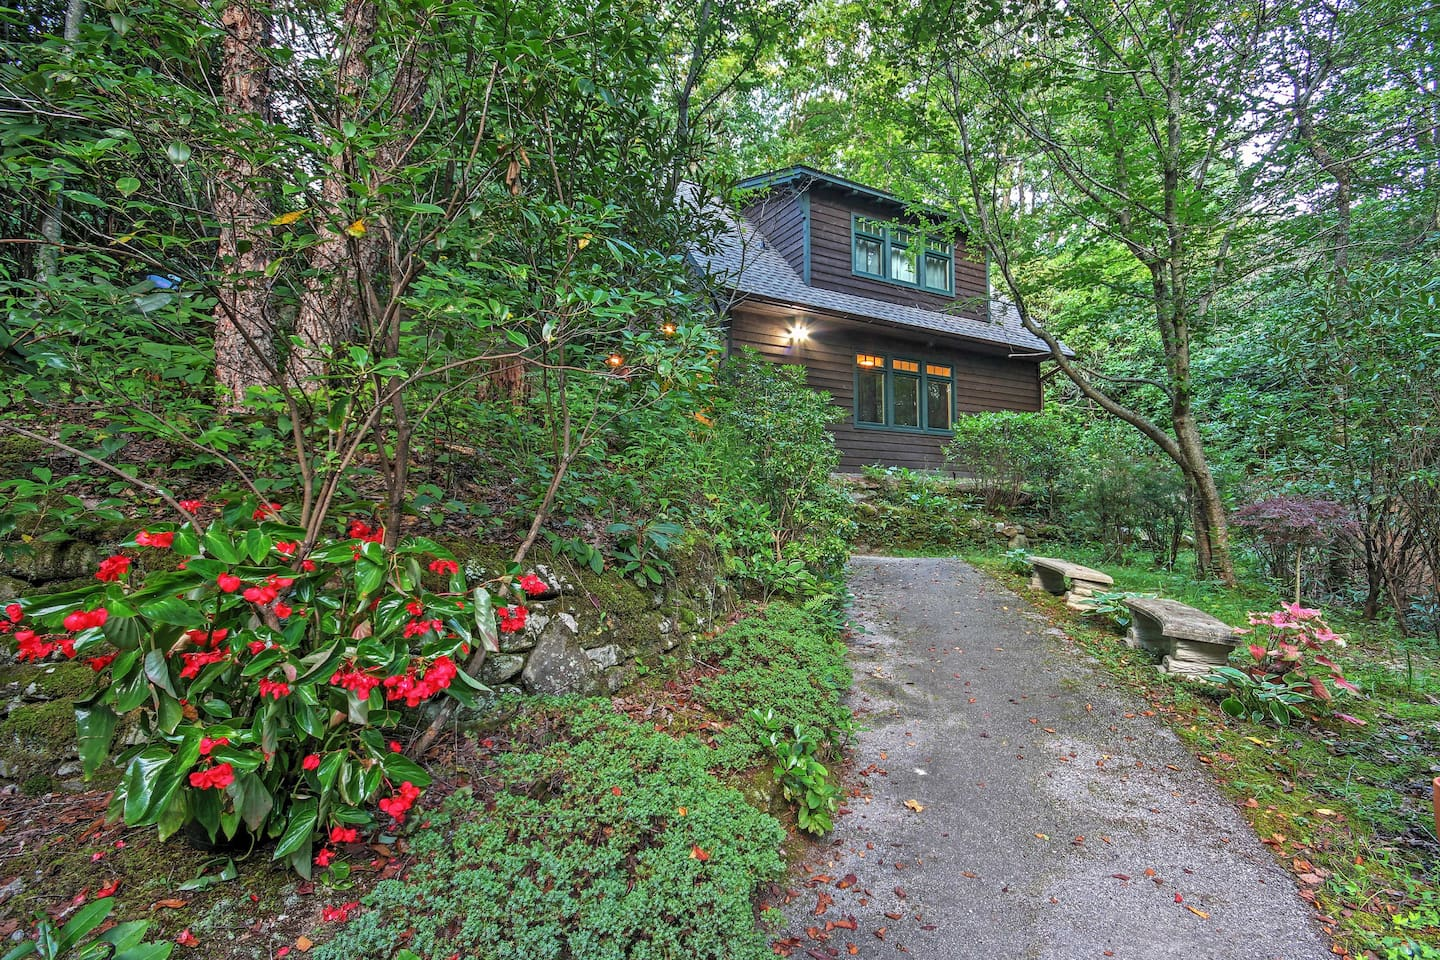 Surrounded by immense forest and wildlife, this property will help you feel away from it all.